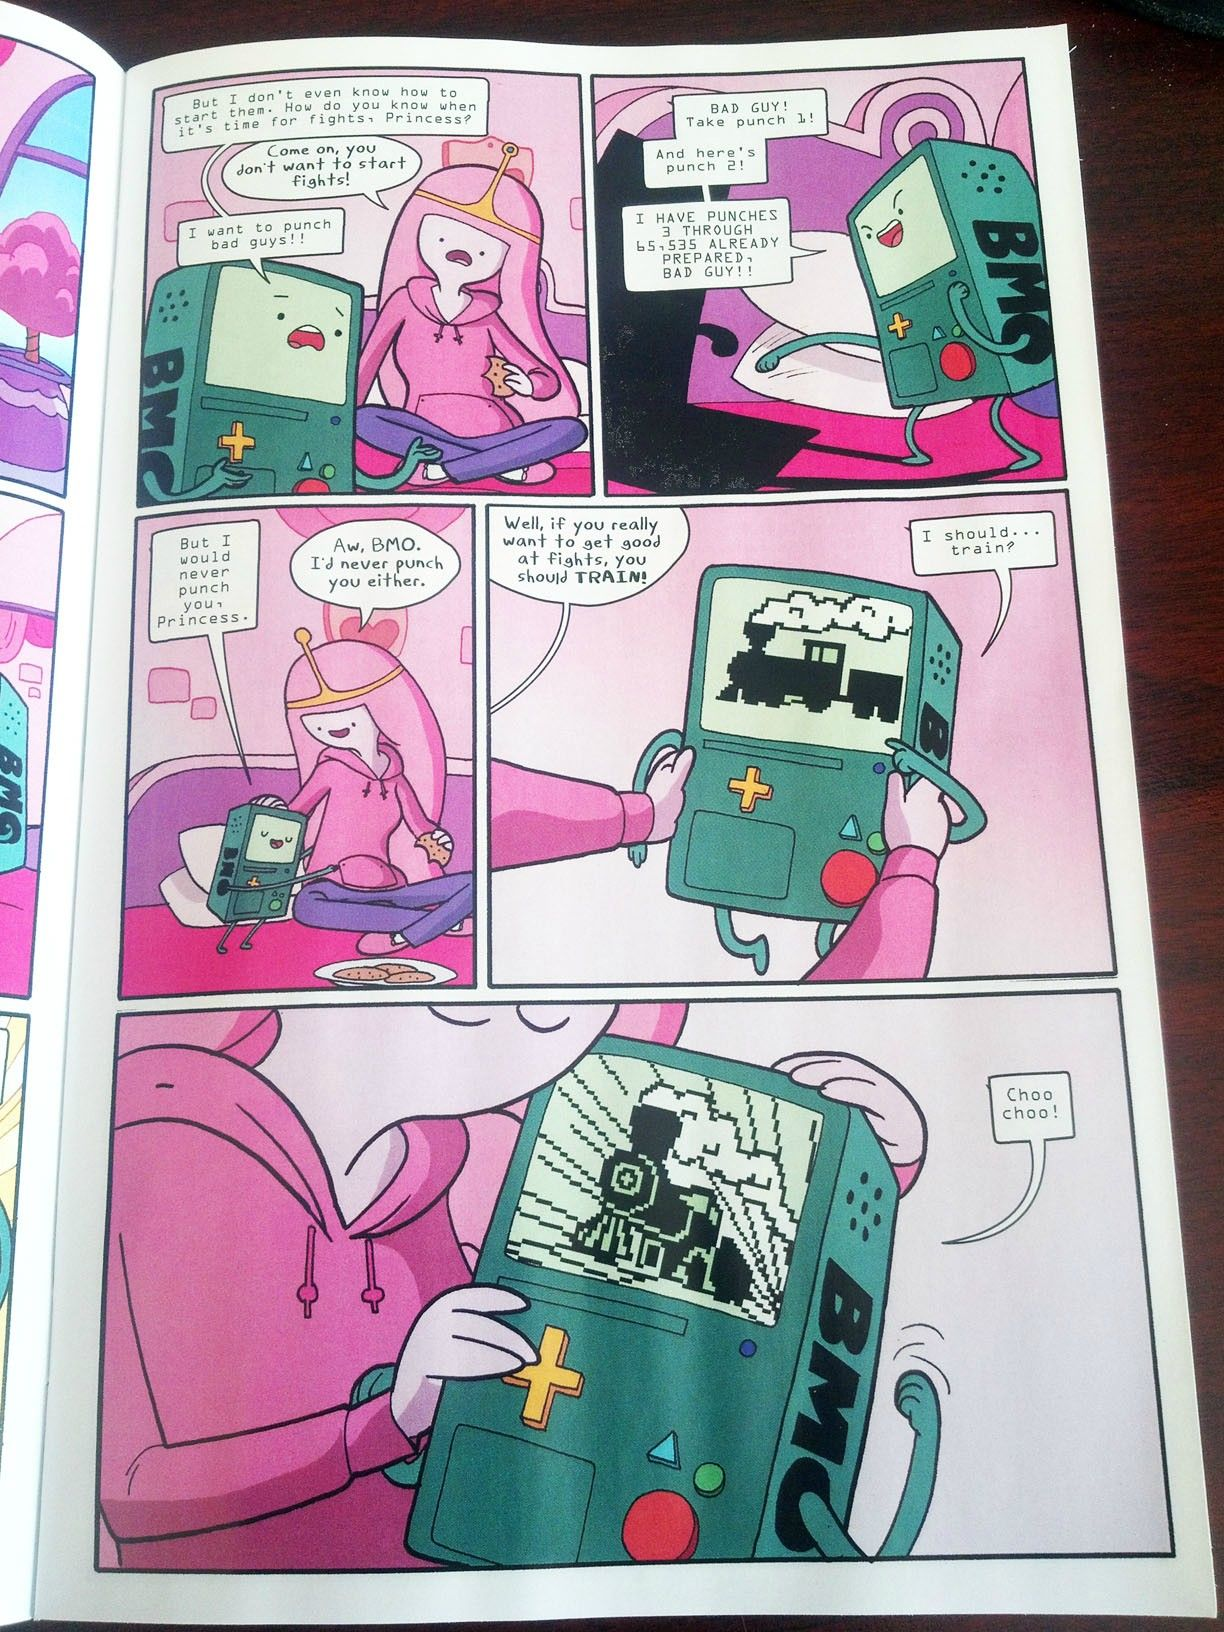 BMO and Princess Bubblegum   Adventure Time comic   Adventure Time     BMO and Princess Bubblegum   Adventure Time comic